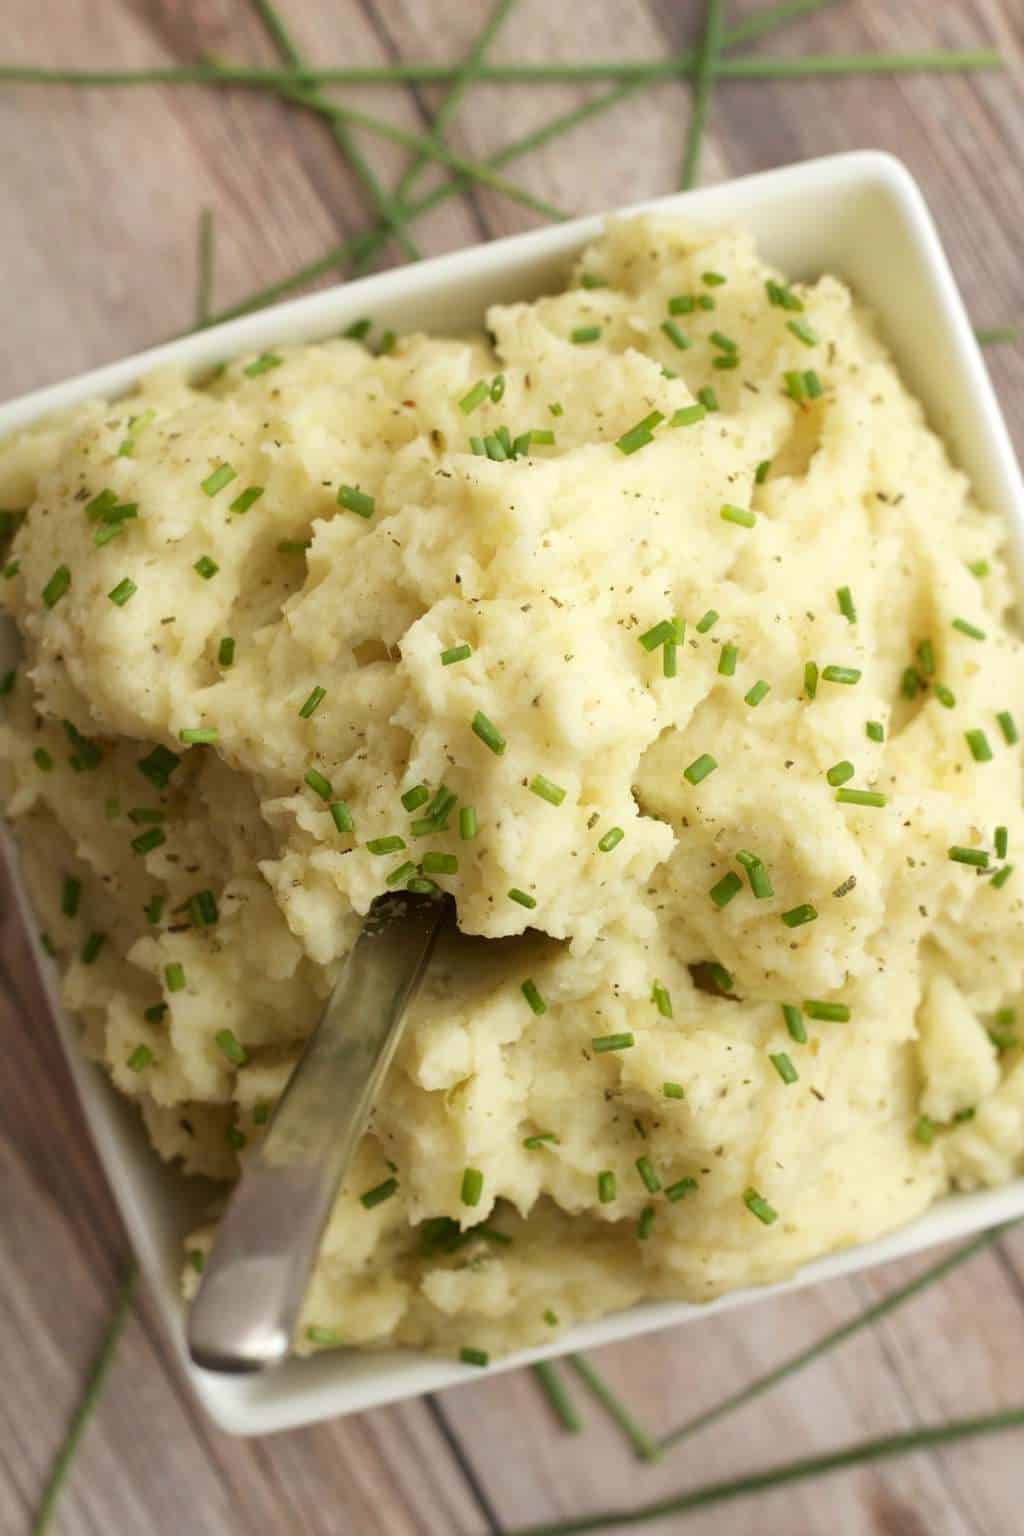 Roasted Garlic Vegan Mashed Potatoes #vegan #lovingitvegan #sides #mashedpotatoes